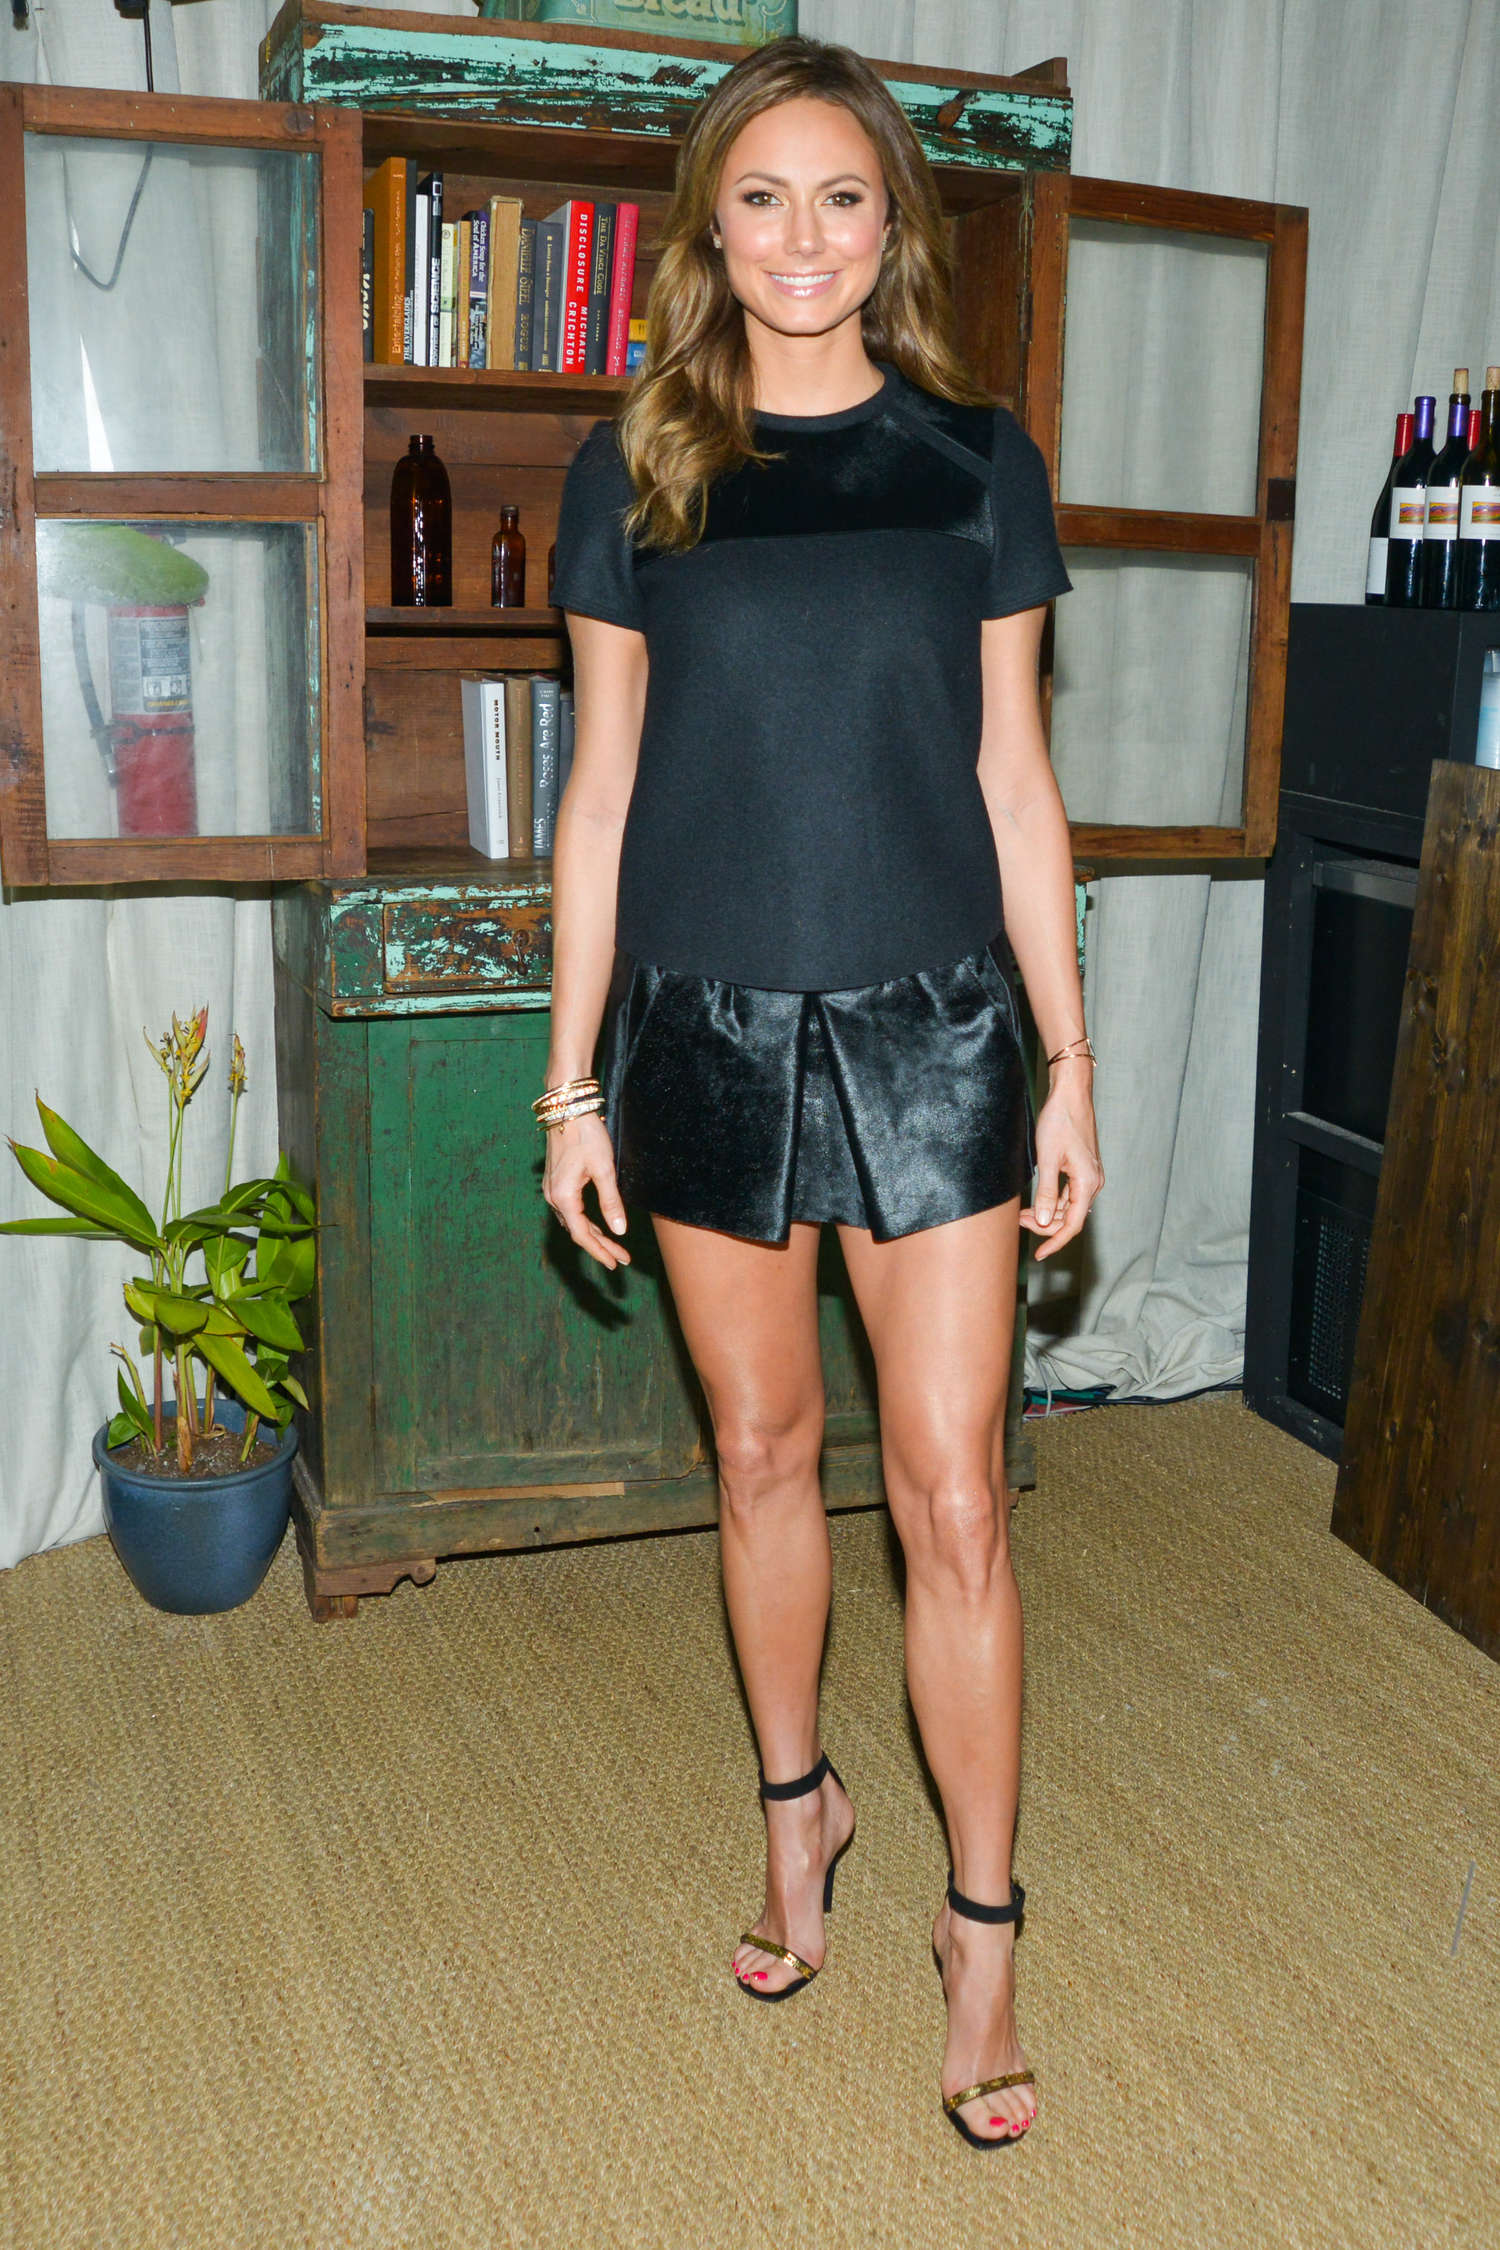 Stacy Keibler ARTSY Celebrates the John Baledessari Art Studios in Miami Beach